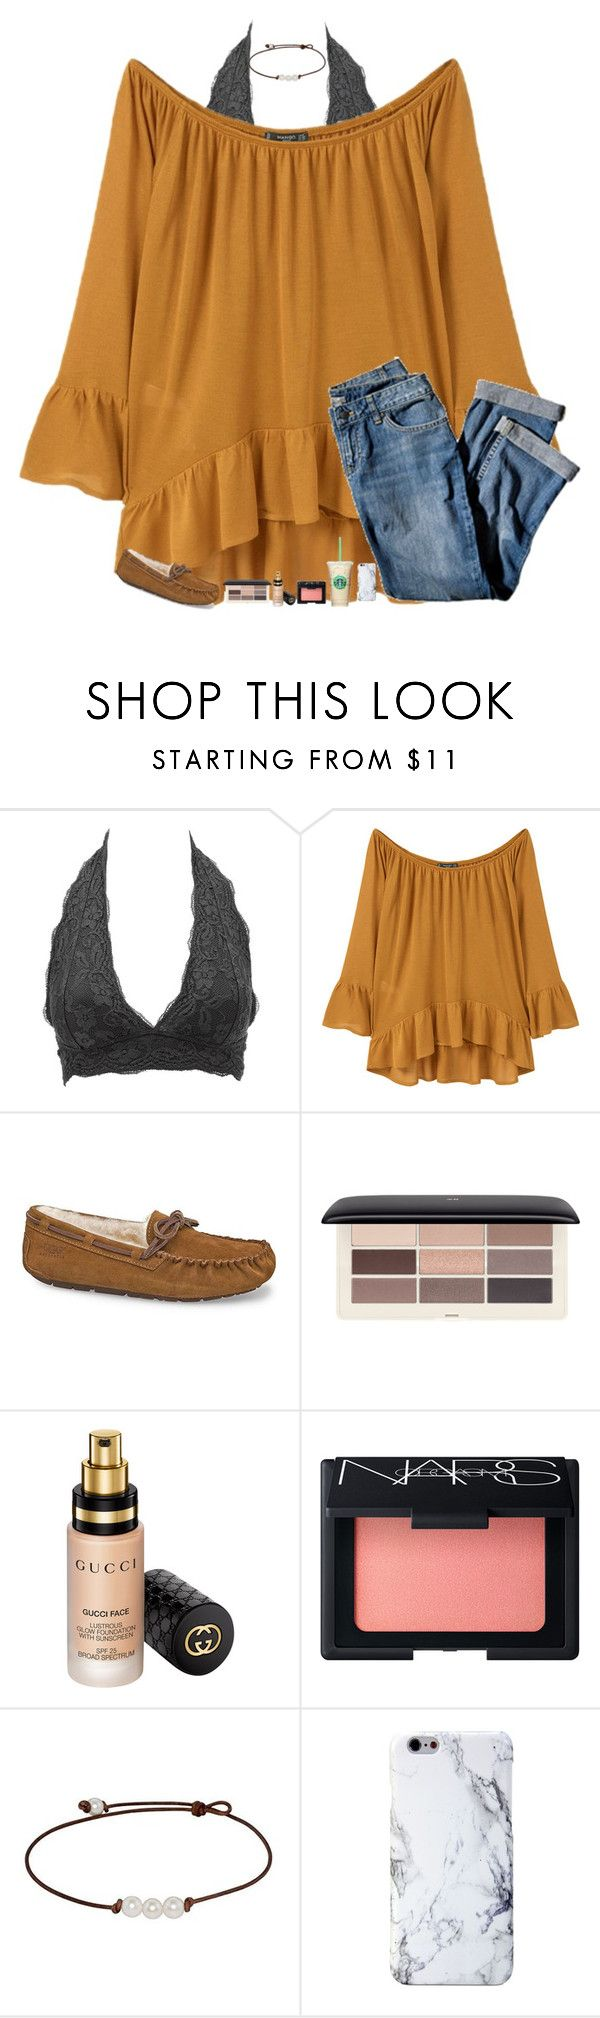 featuring Charlotte Russe, MANGO, J.Jill, UGG, HM, Gucci and NARS Cosmetics